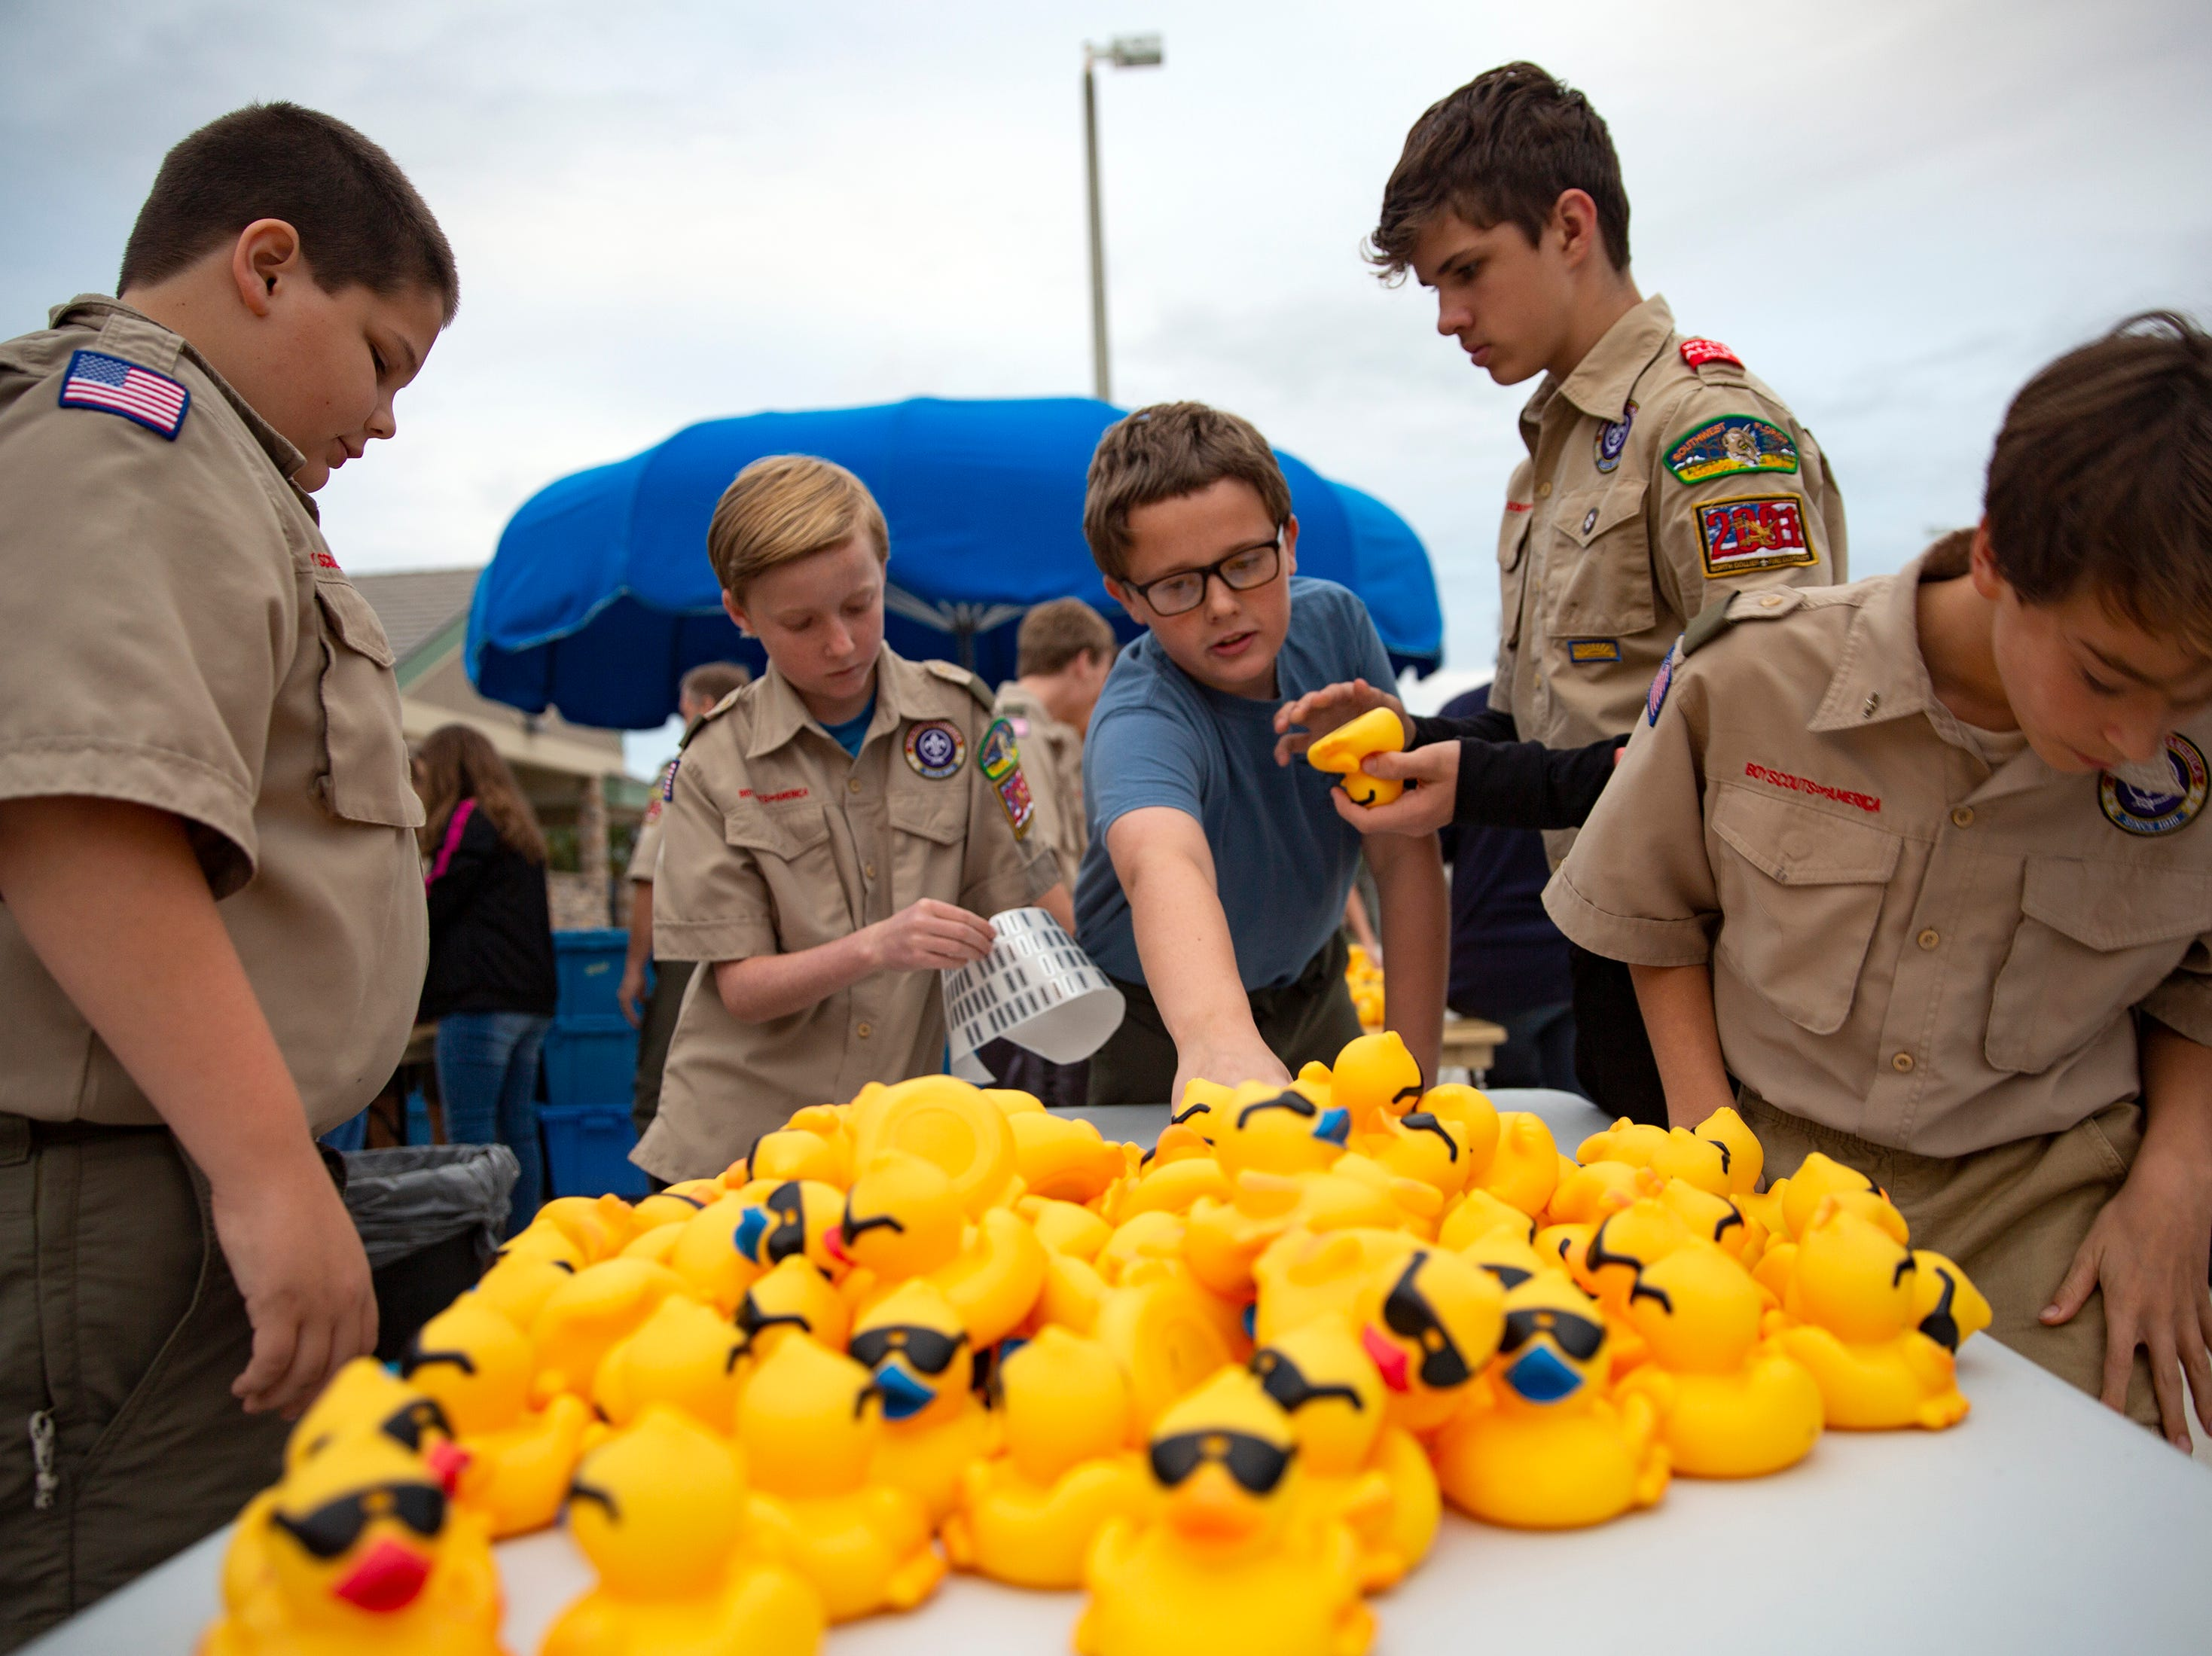 Members of Boy Scouts Troop 2001 help place tags on rubber ducks, Wednesday, Jan. 30, 2019, at the North Collier Regional Park in East Naples.